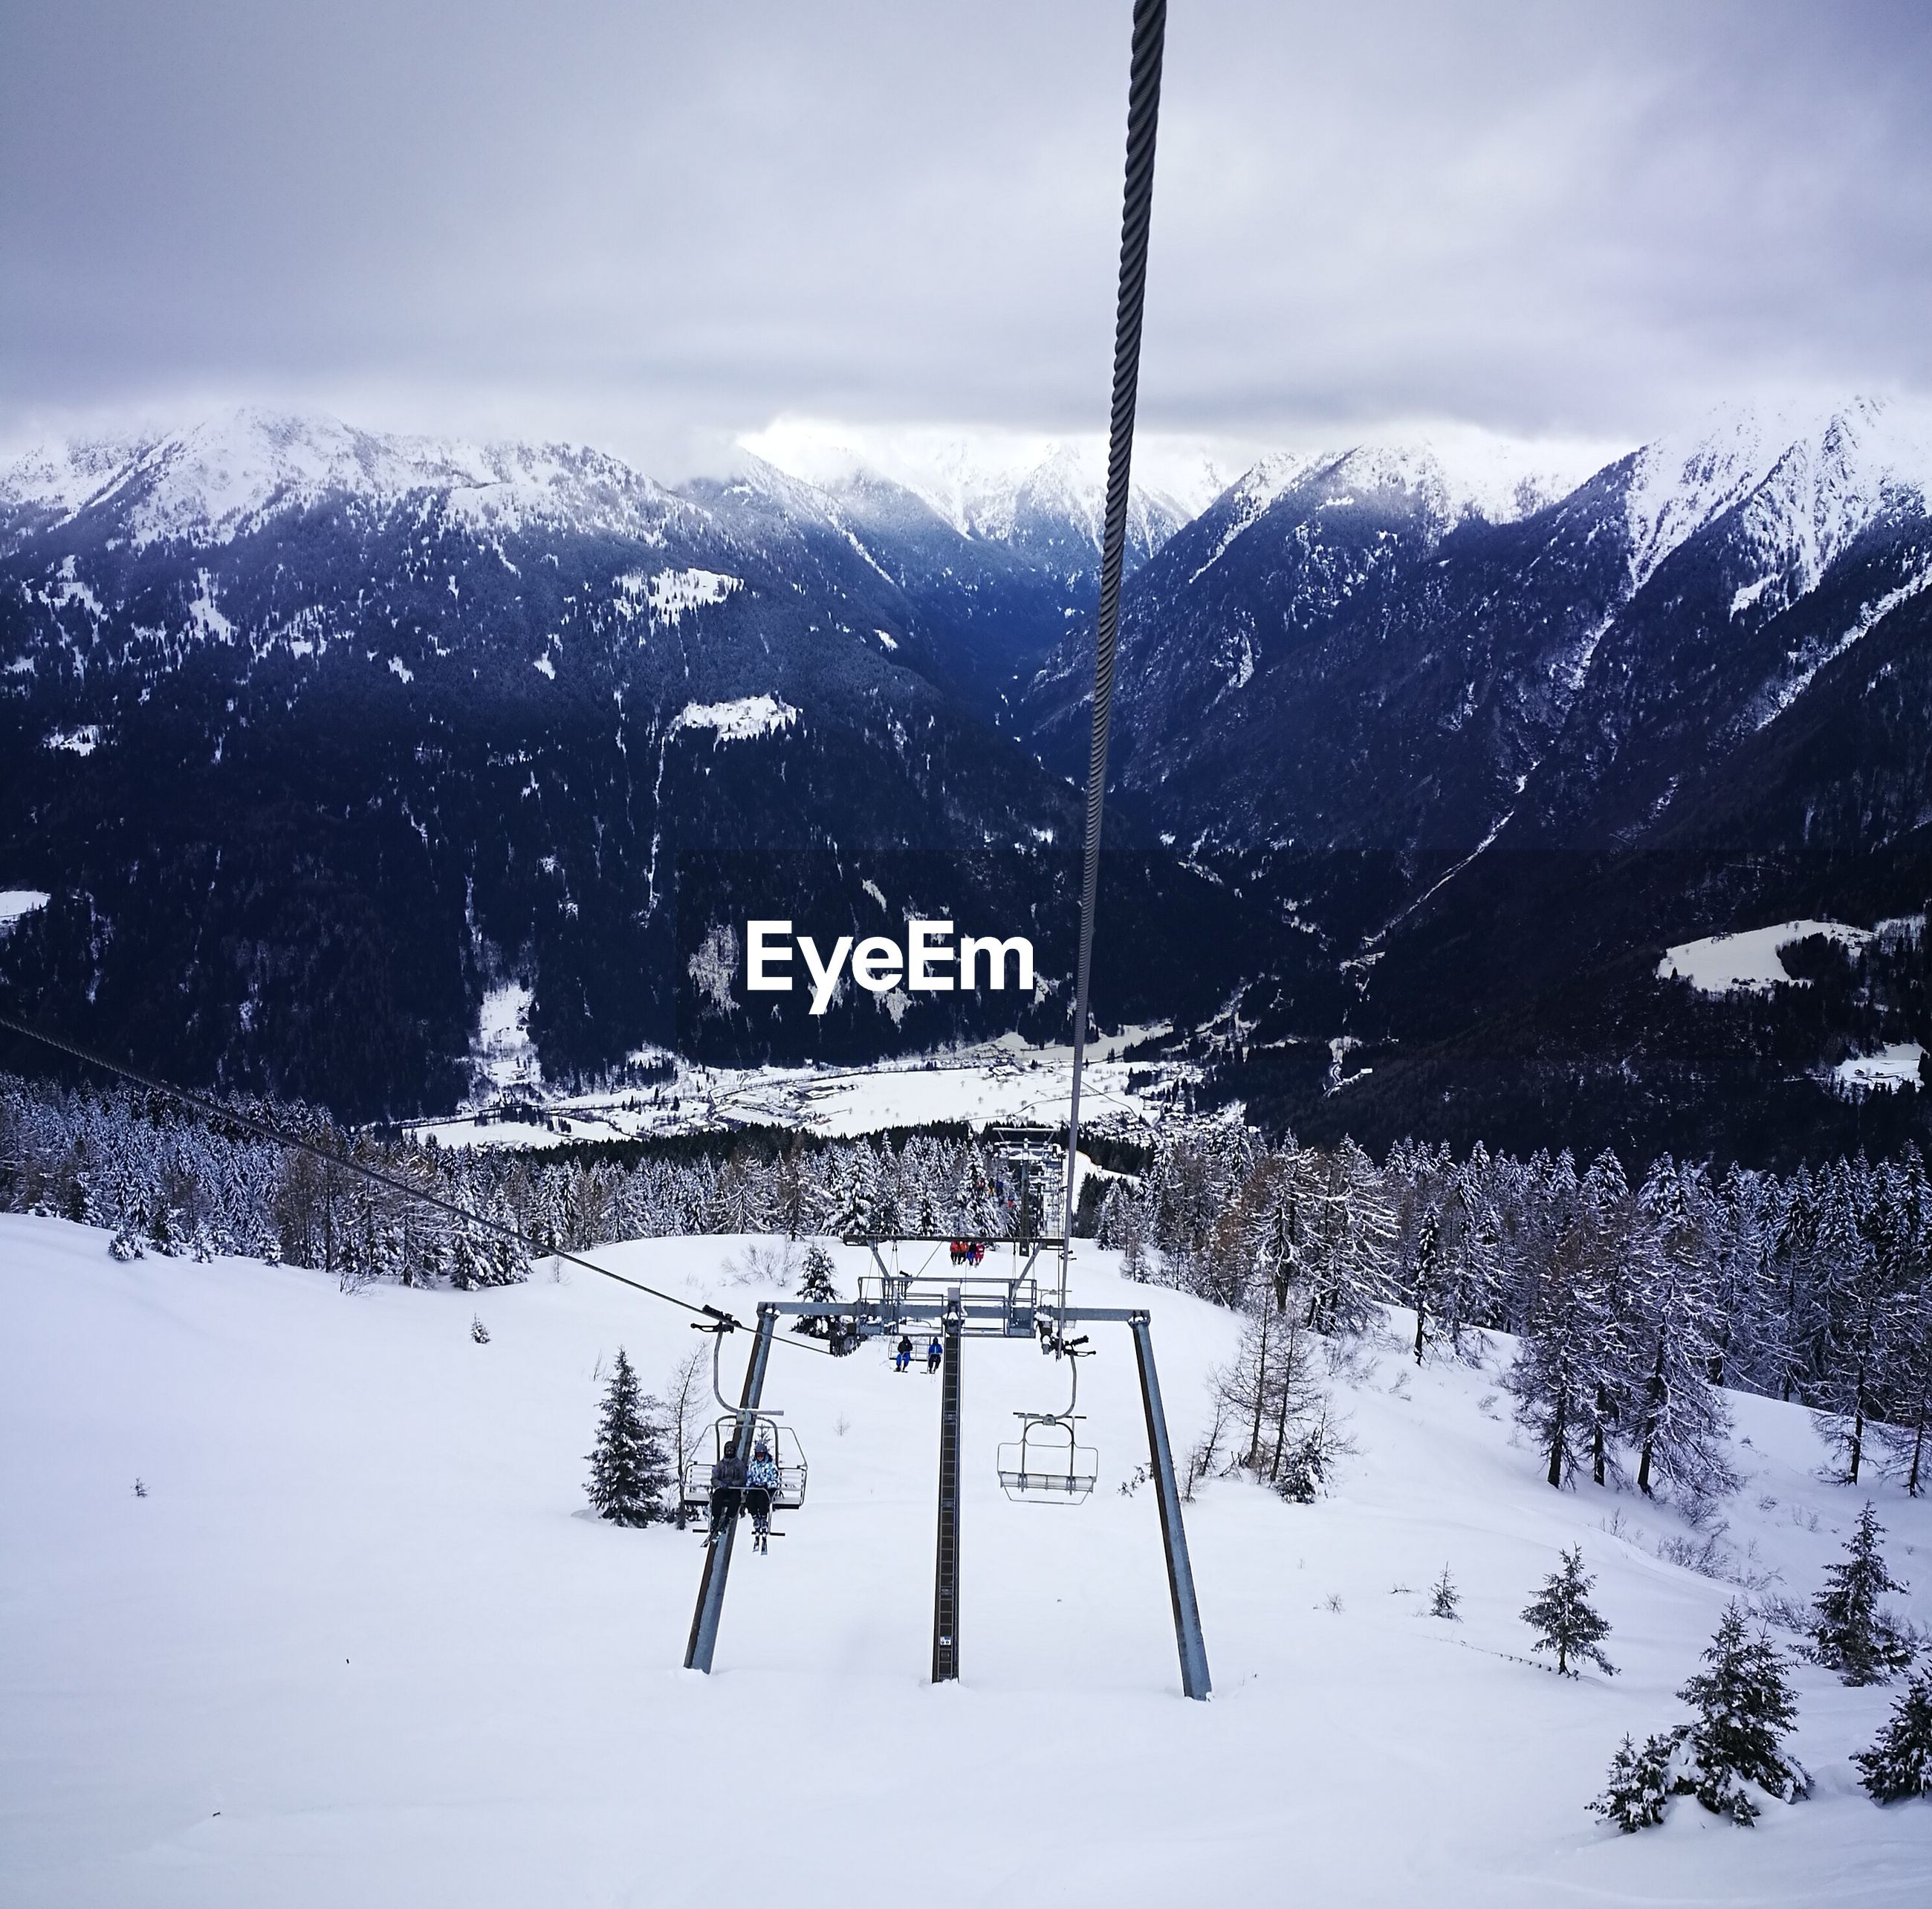 SKI LIFT OVER SNOWCAPPED MOUNTAIN AGAINST SKY